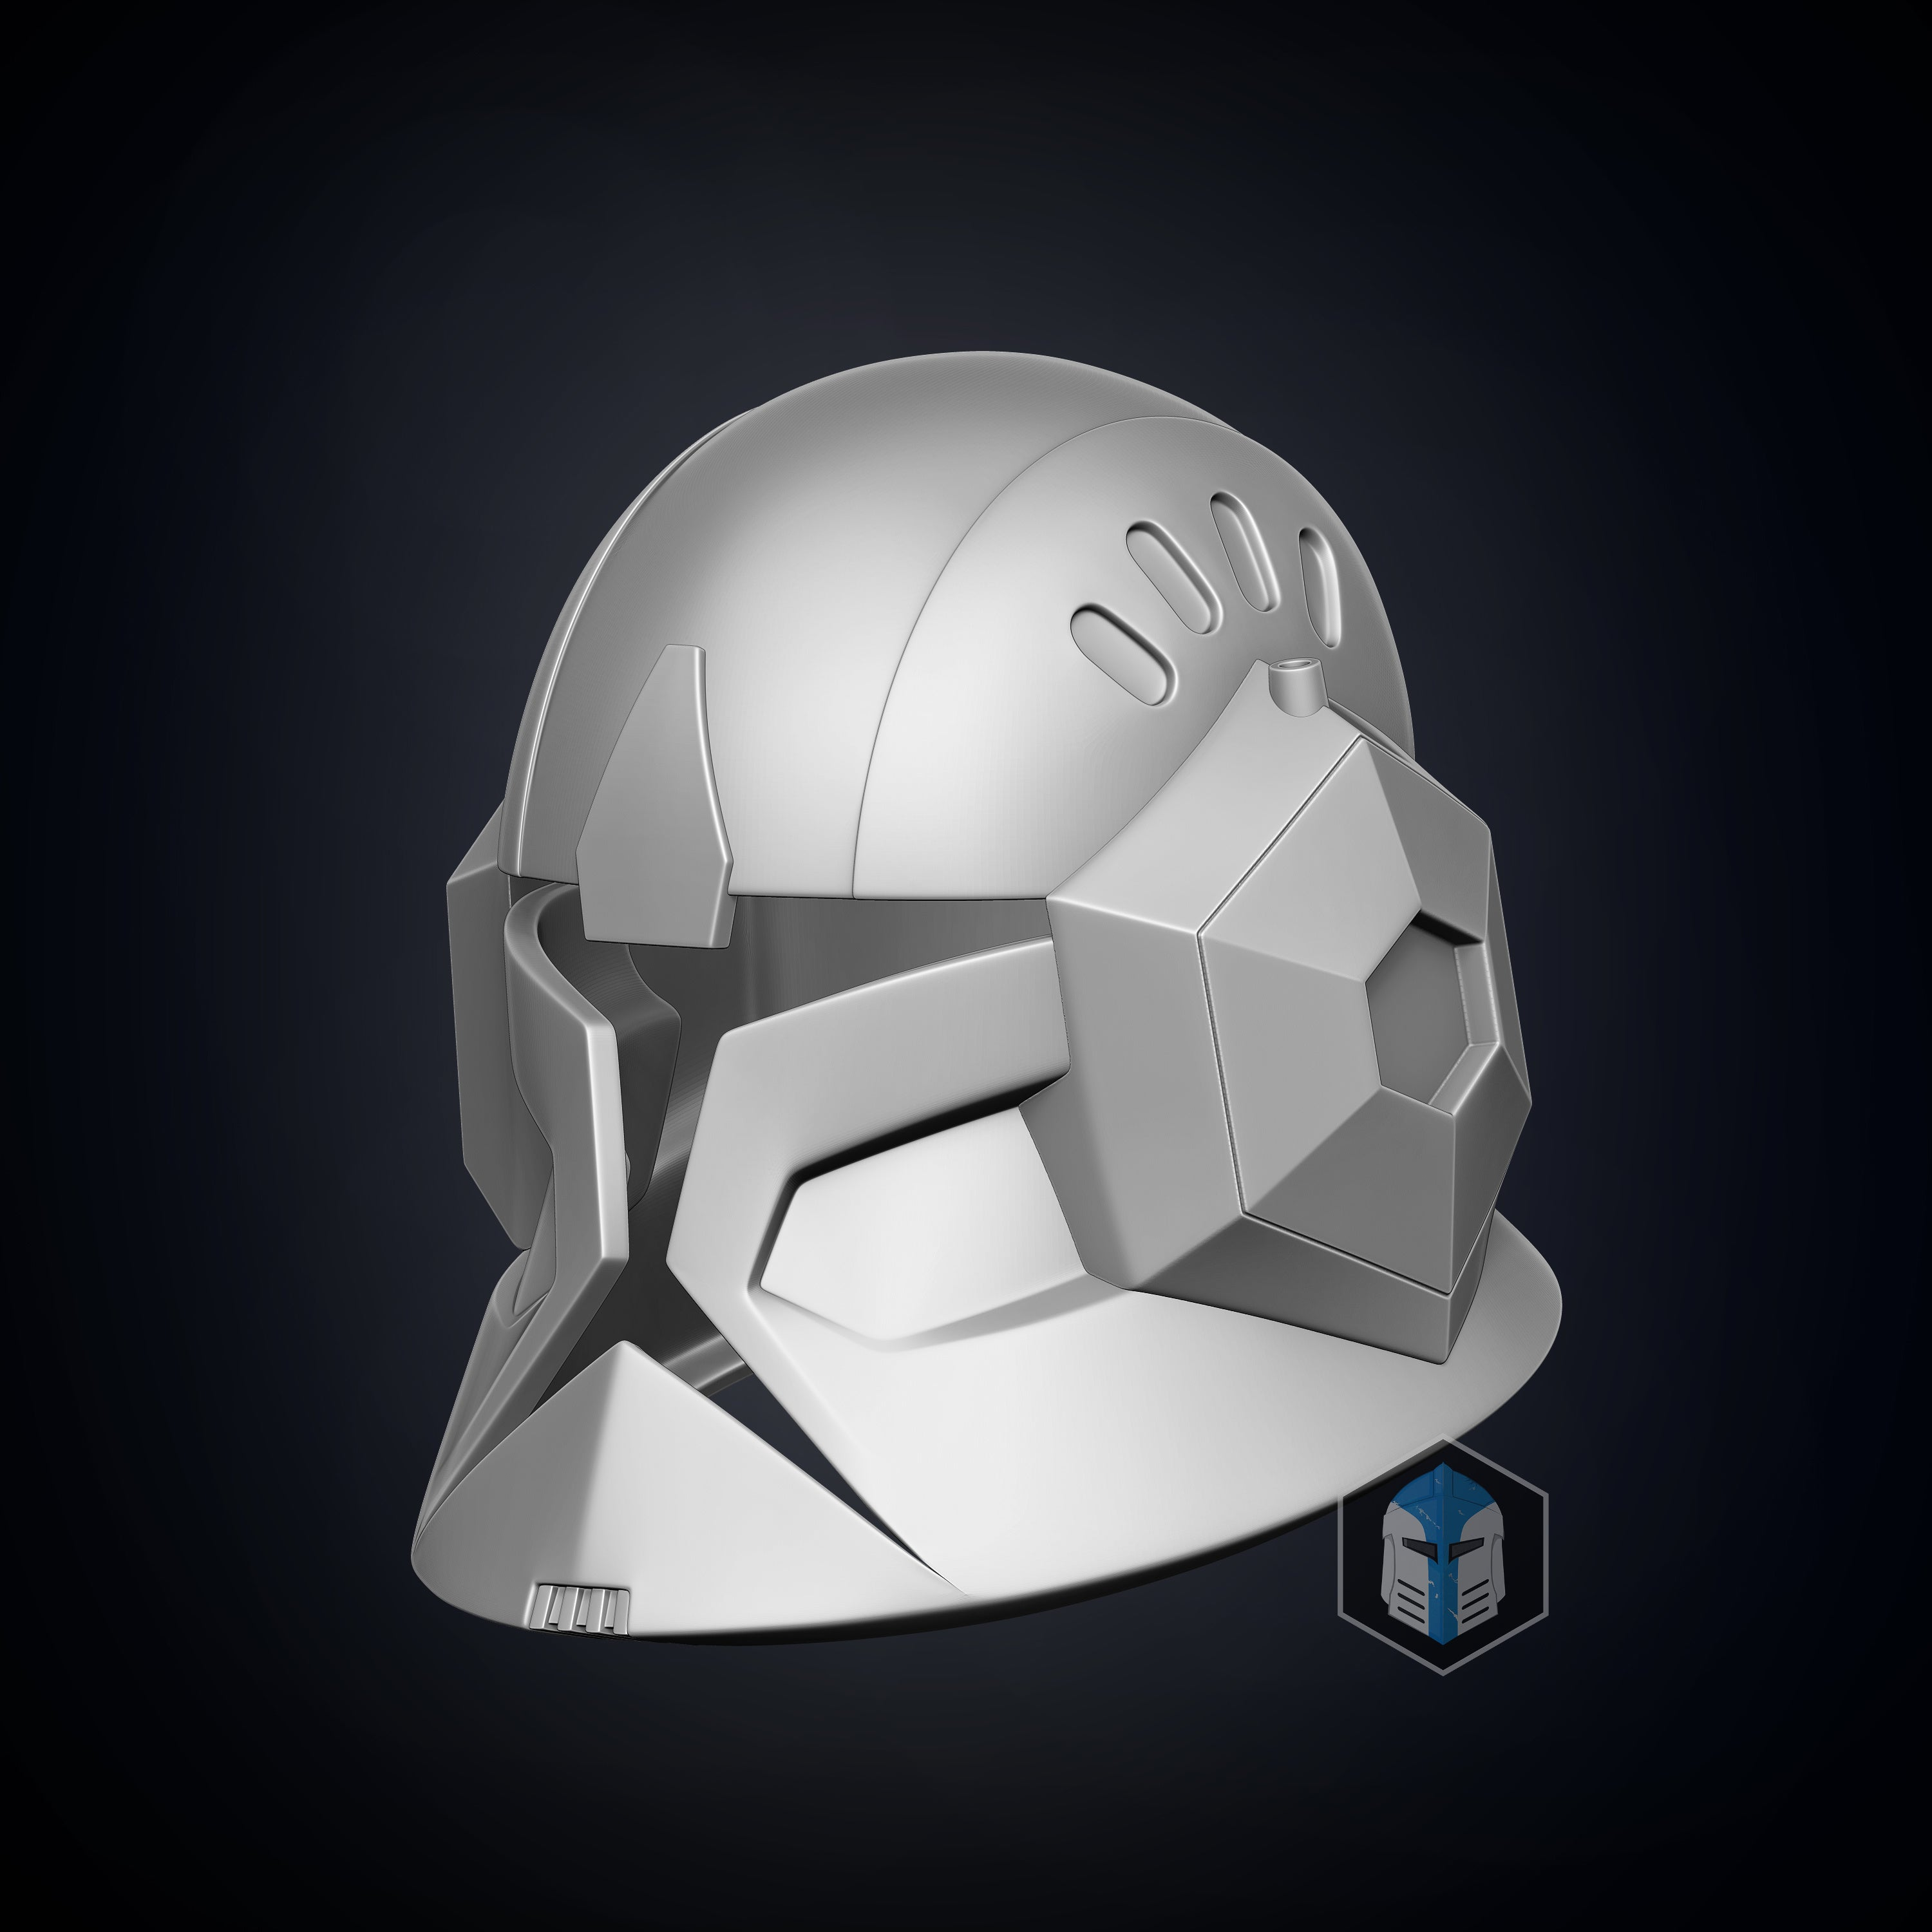 Animated Spec Ops Clone Trooper Helmet - 3D Print Files - The Galactic Armory